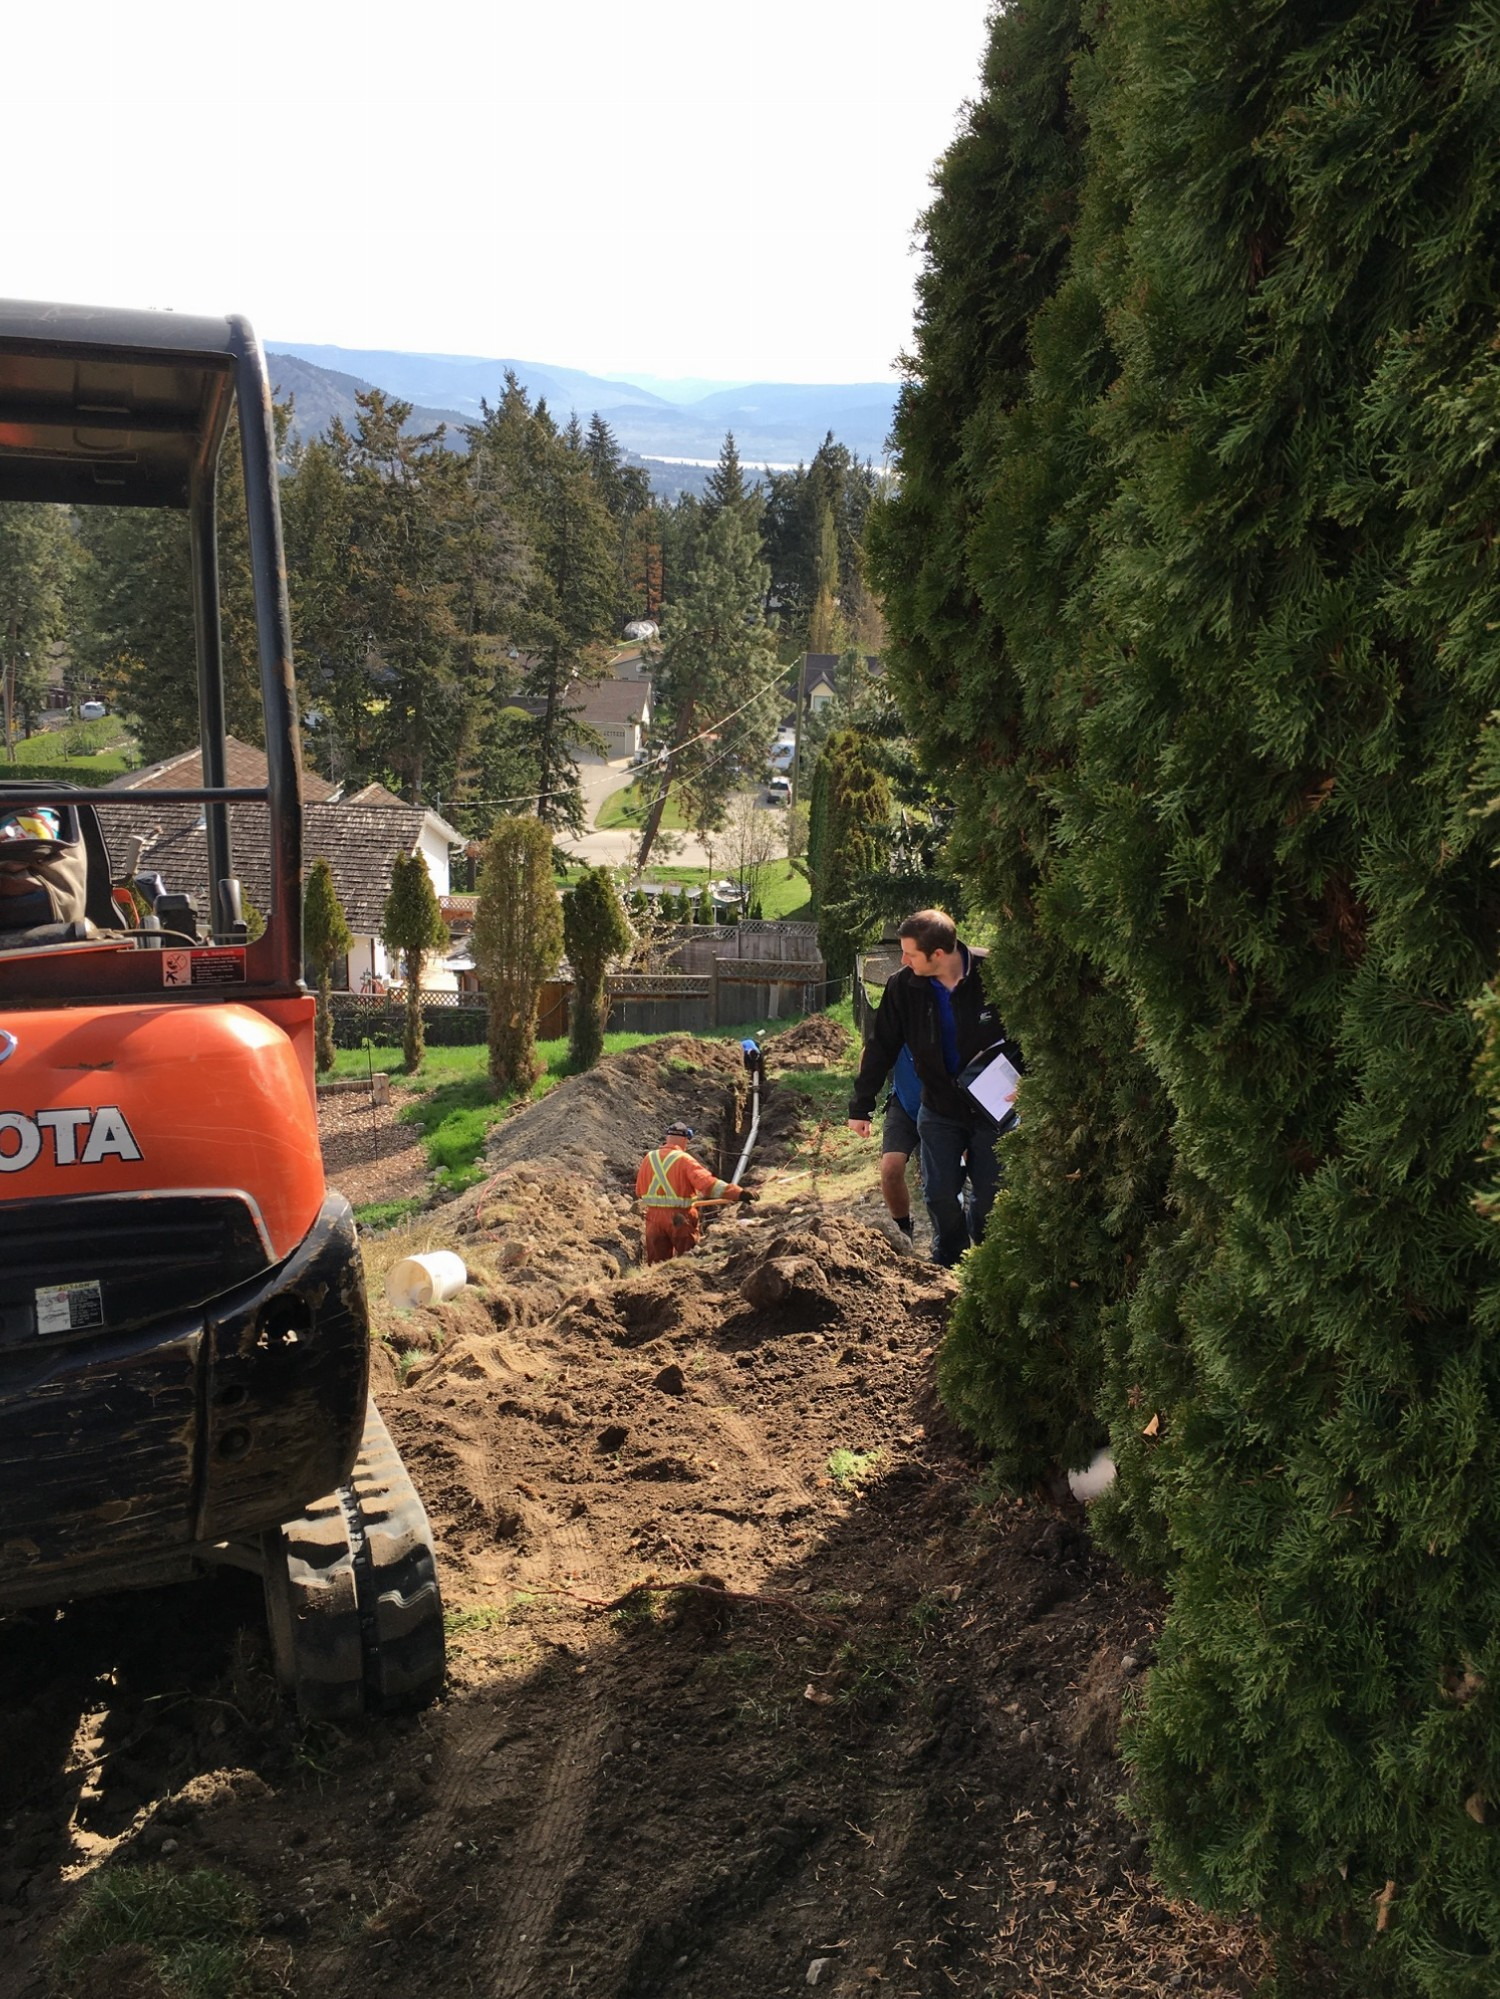 West Kelowna Plumbers - A1 Choice Plumbing - Installing a sewer connection